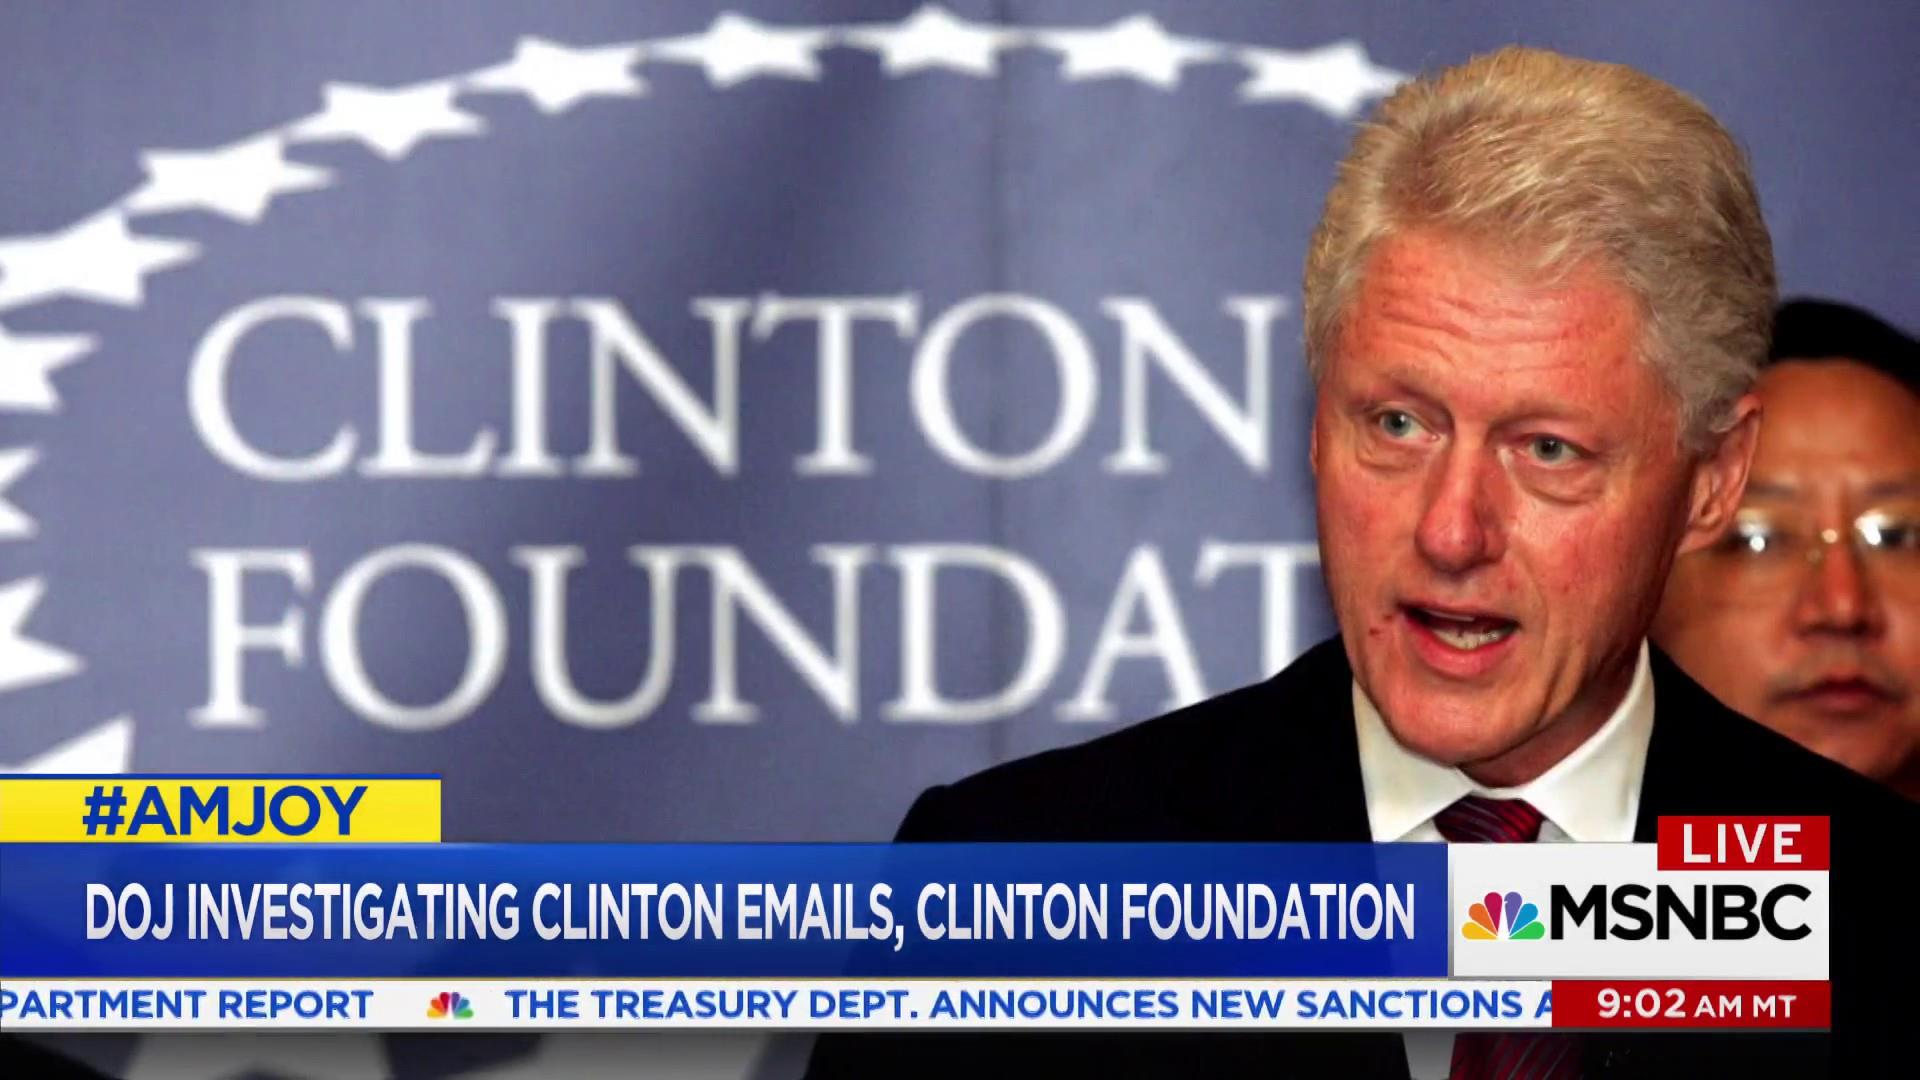 Clinton Foundation investigation labeled a 'distraction'